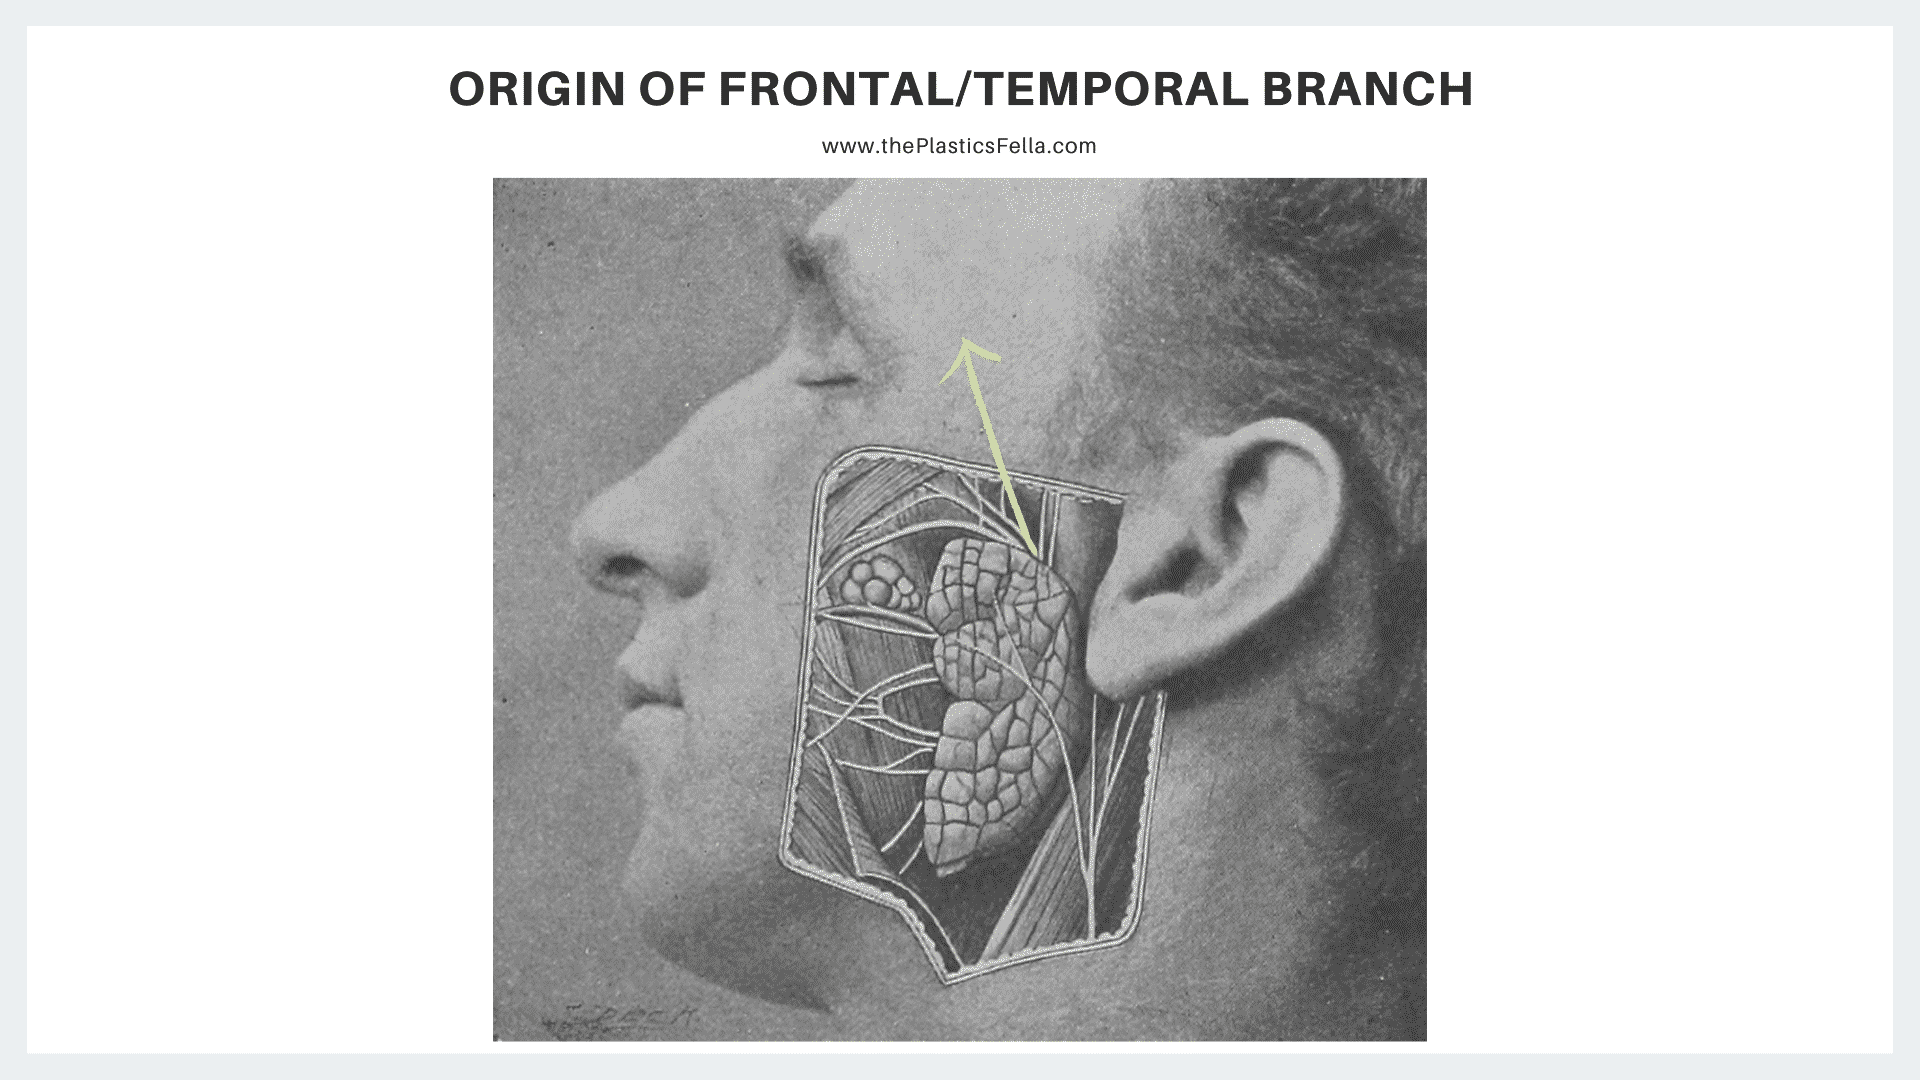 The frontal/temporal branch of the facial nerve arising from the superomedial aspect of the parotid gland.